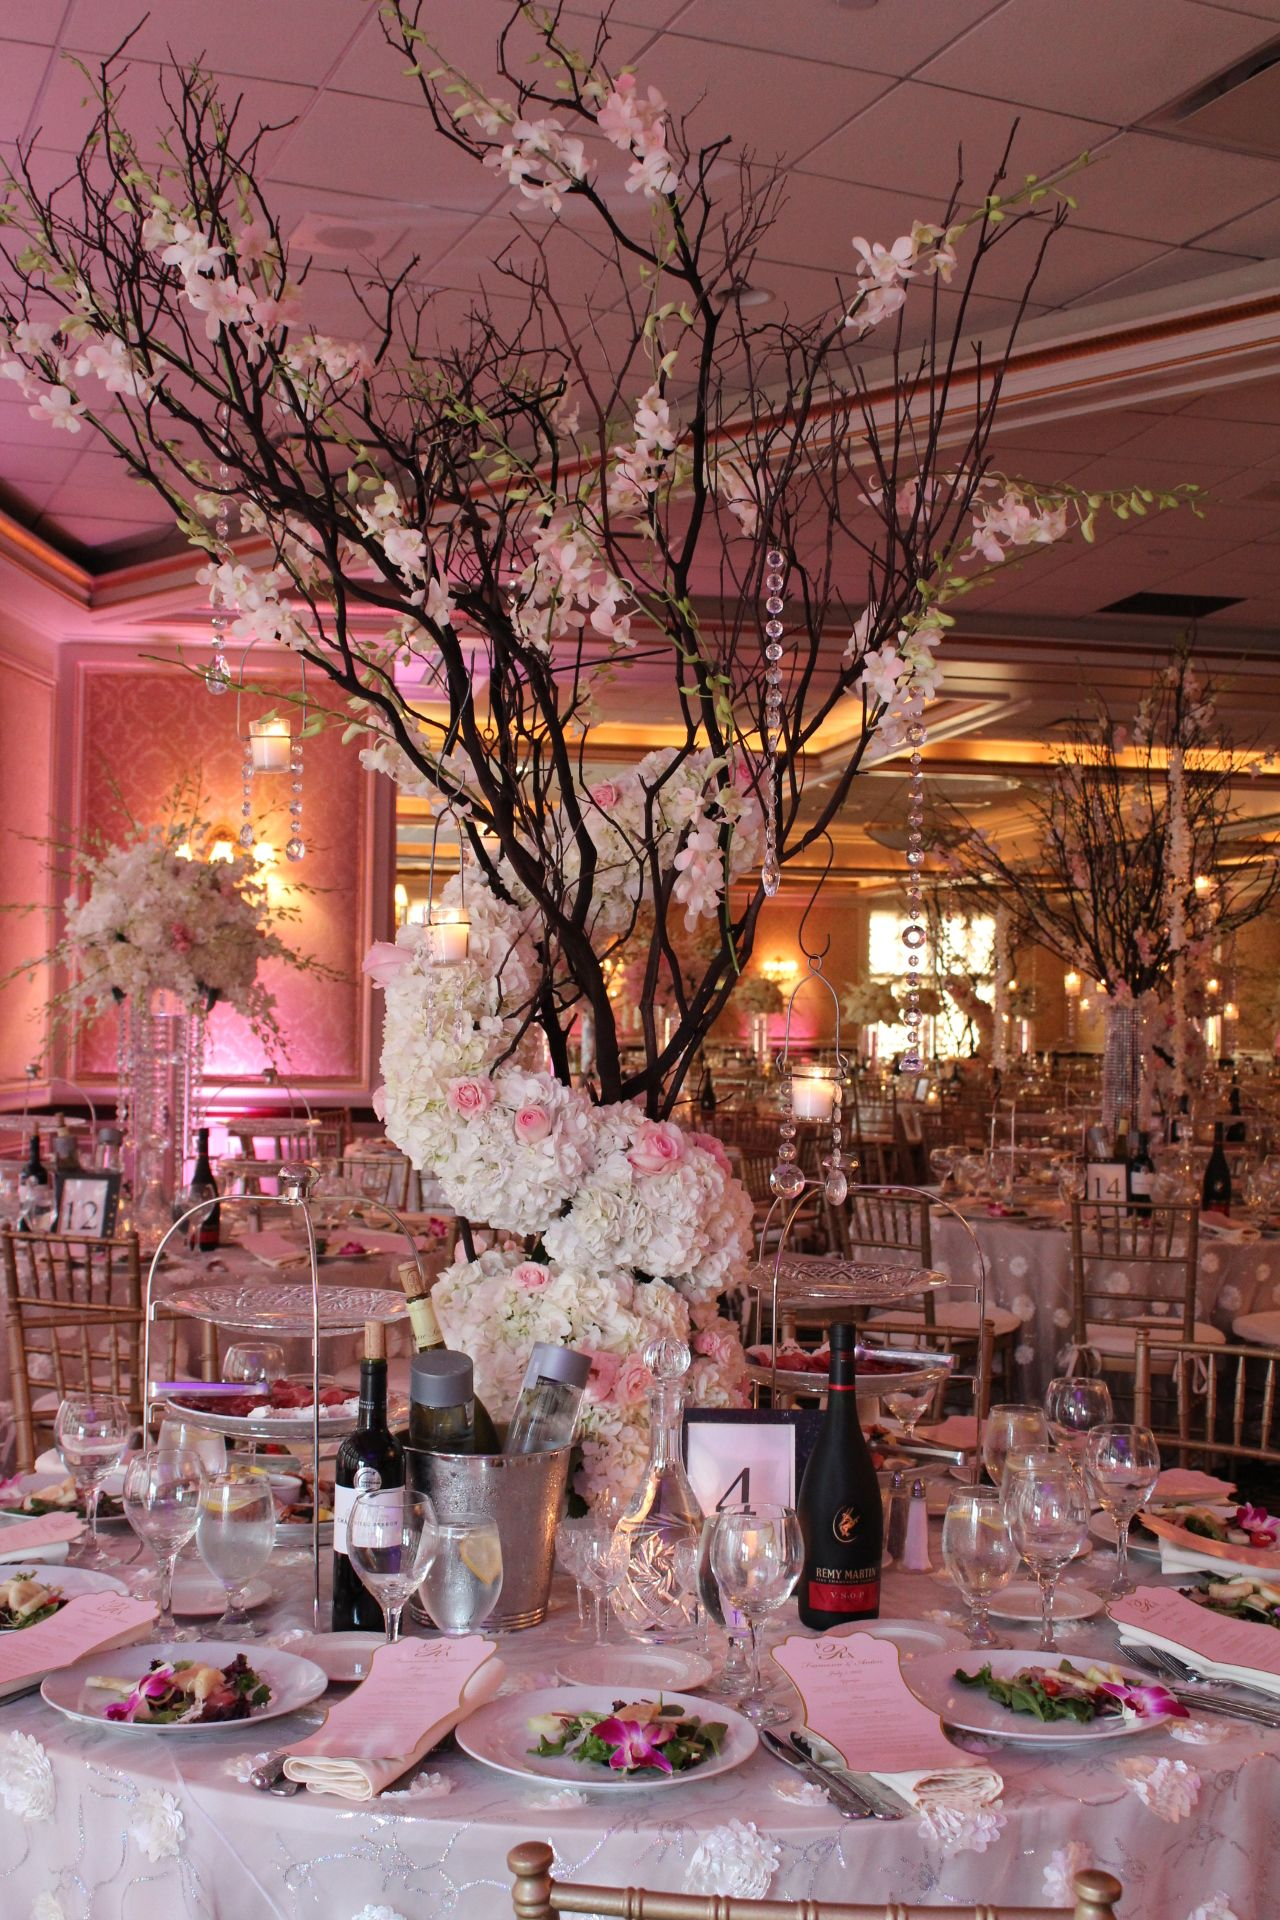 Centerpiece With Blooming Treeoh My Goodness How Beautiful